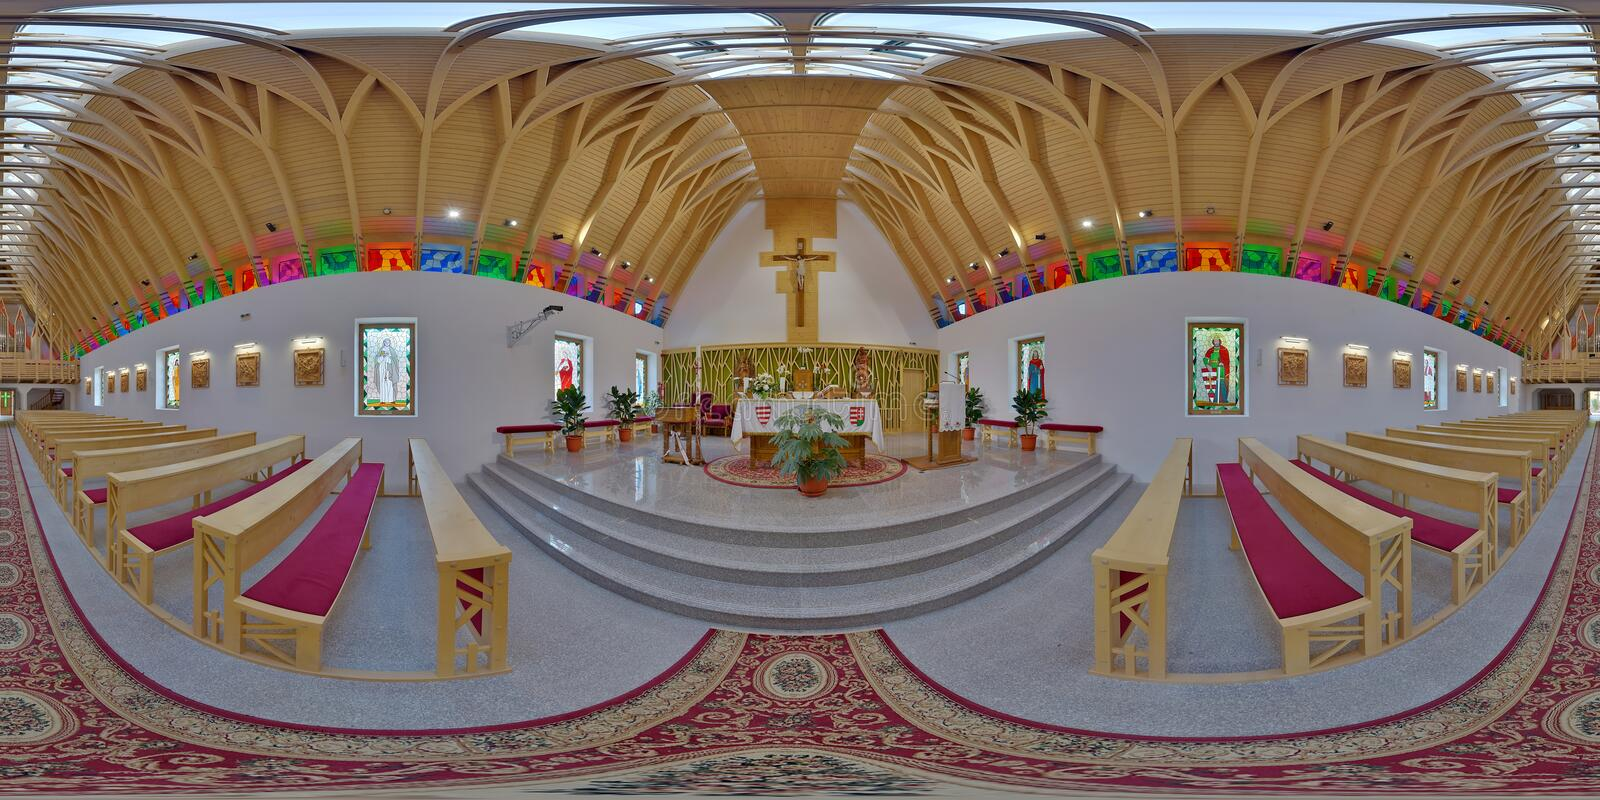 Heiliges Joseph Catholic Church Interior, ZetevÃ-¡ ralja (Vor-Cetate), Rumänien stockbild